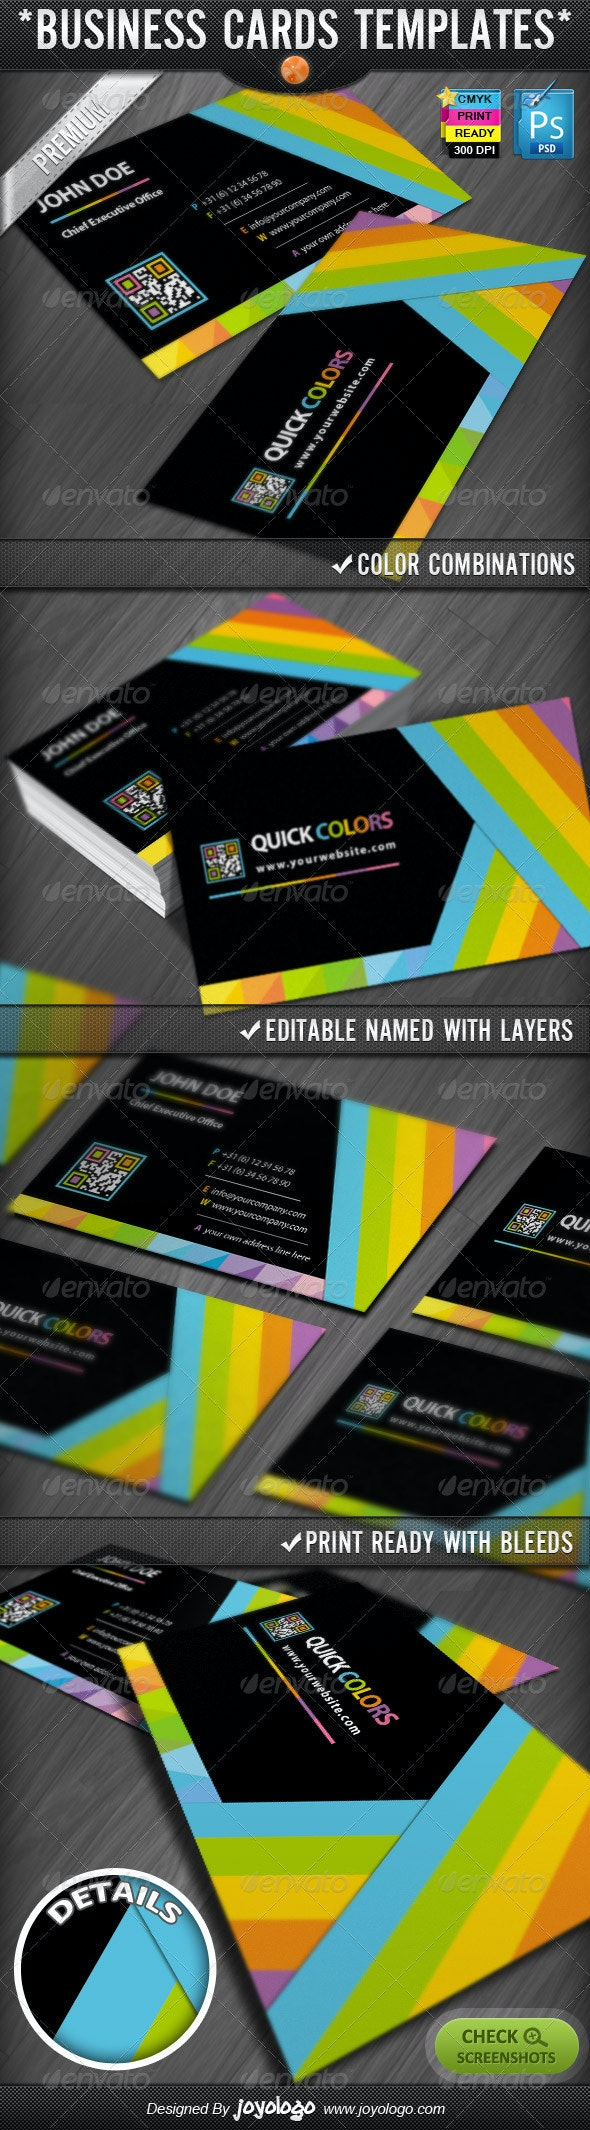 Quick Colors Rainbow QR Code Business Cards Design - Creative Business Cards